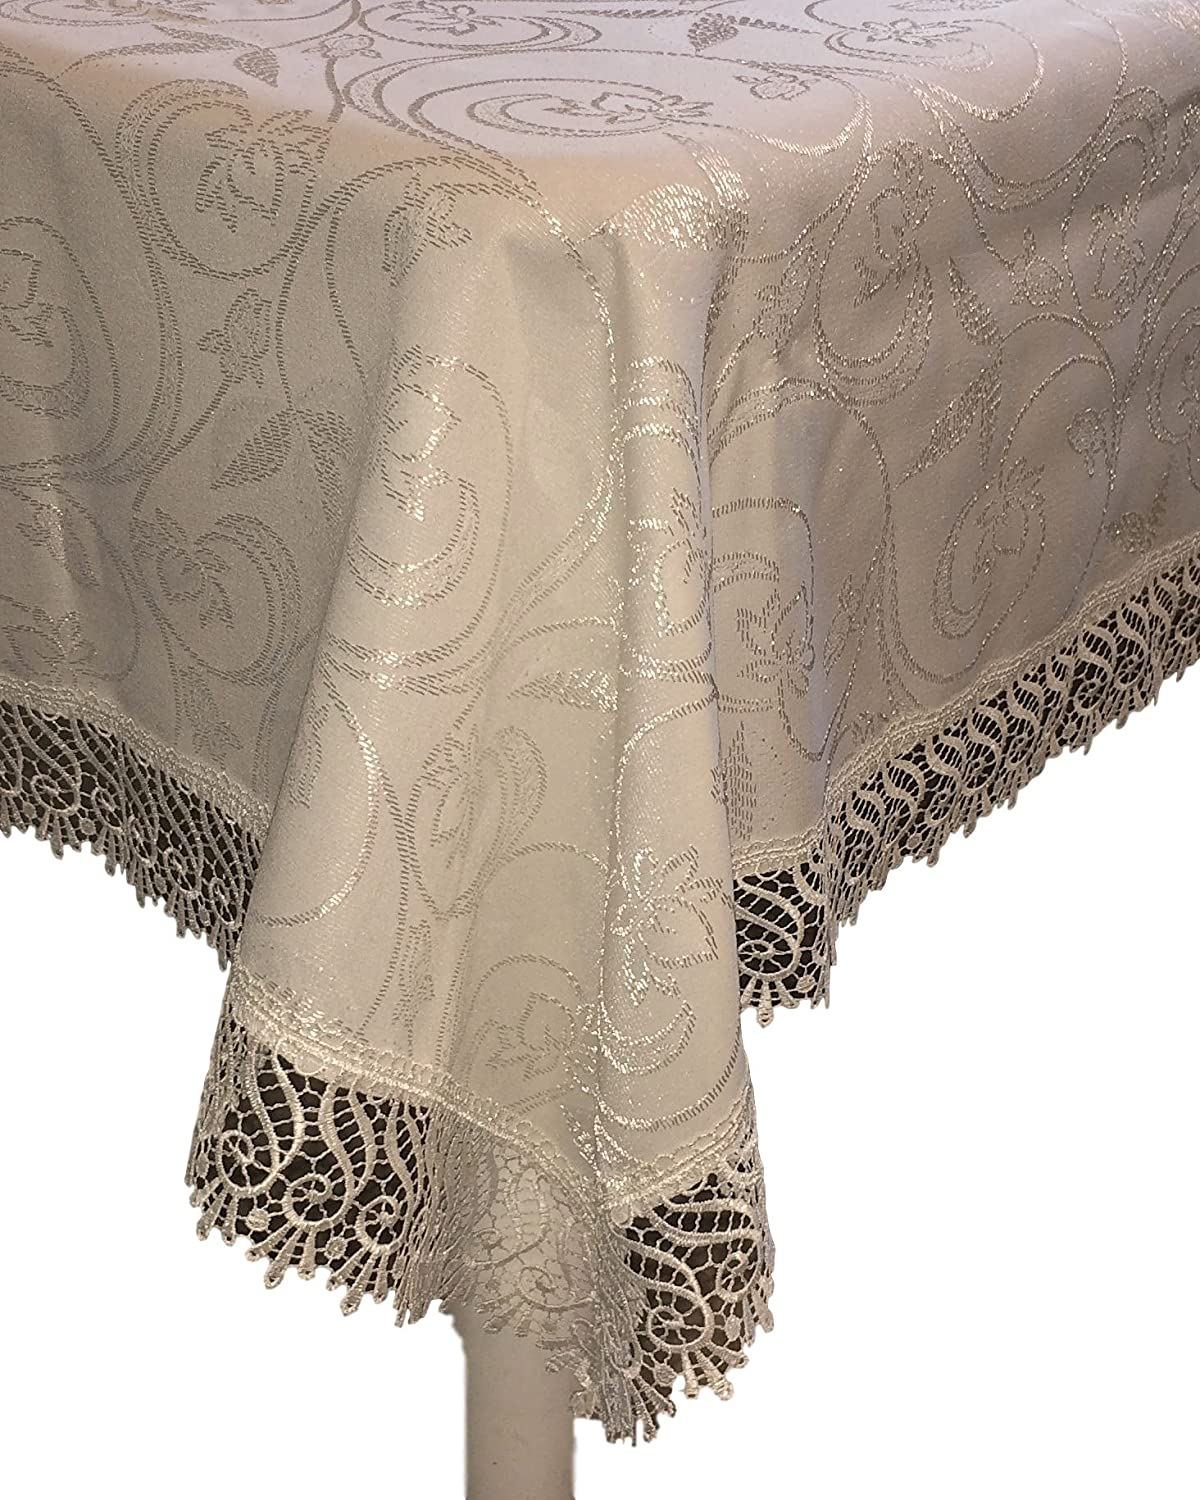 Christmas Tablescape Décor - Classic elegant ivory lace edged rectangular tablecloth